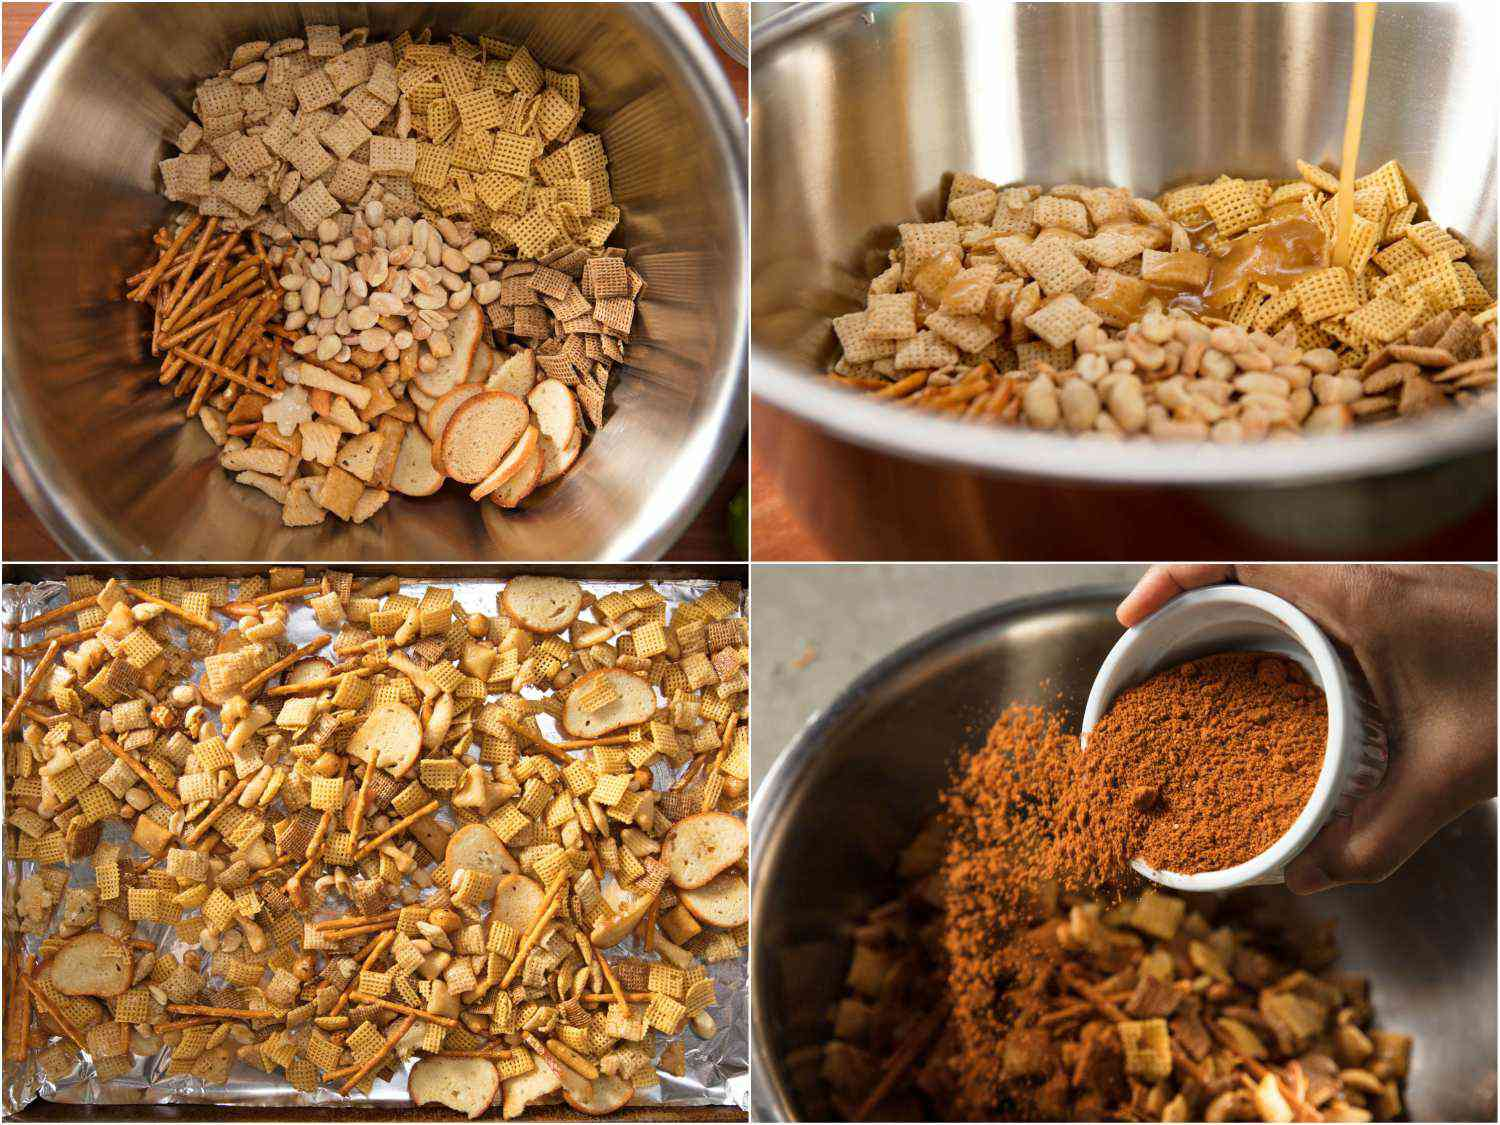 20170921-chaat-vicky-wasik-chex.jpg